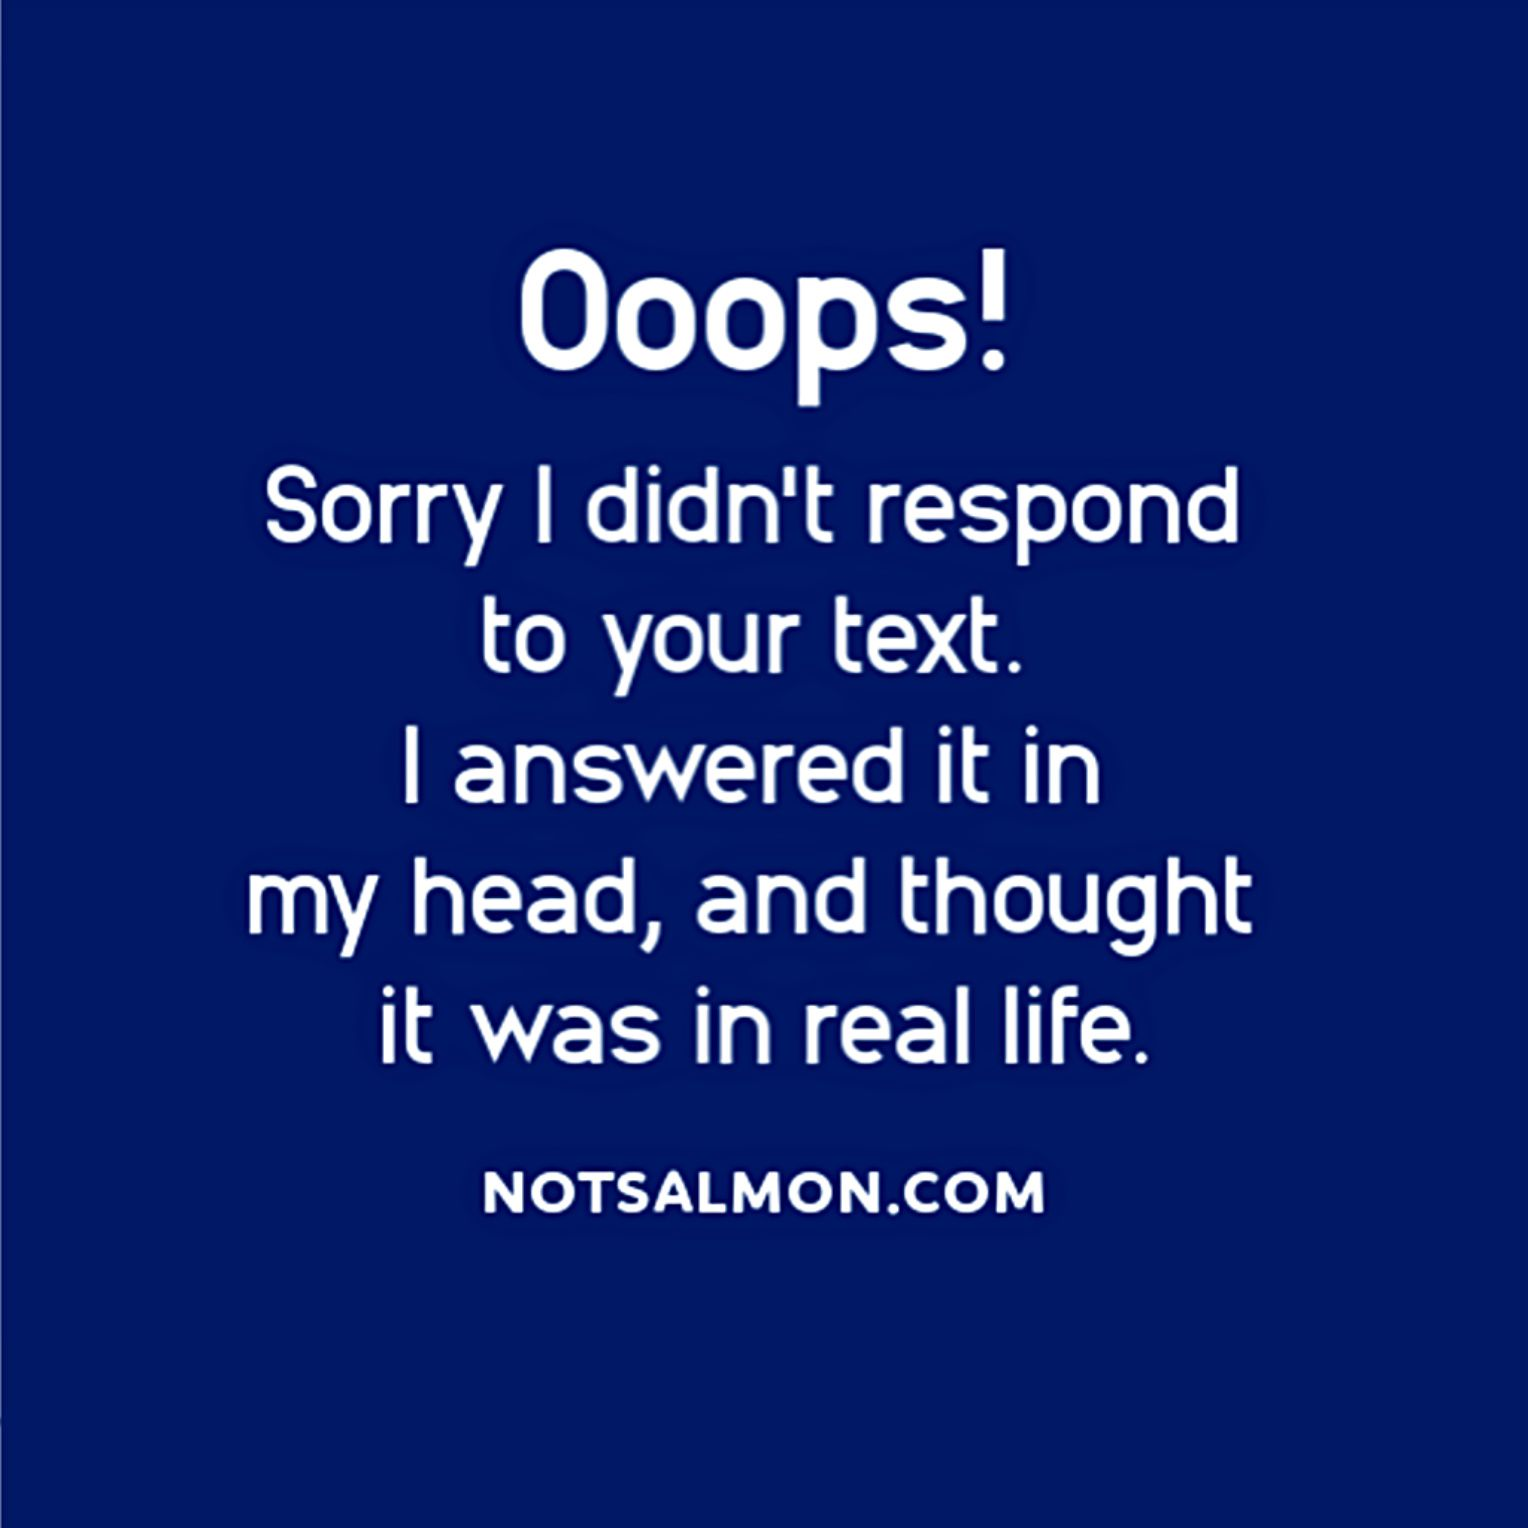 10 Funny Inspirational Quotes To Make You Smile And Think Short Funny Quotes Funny Inspirational Quotes Funny Quotes